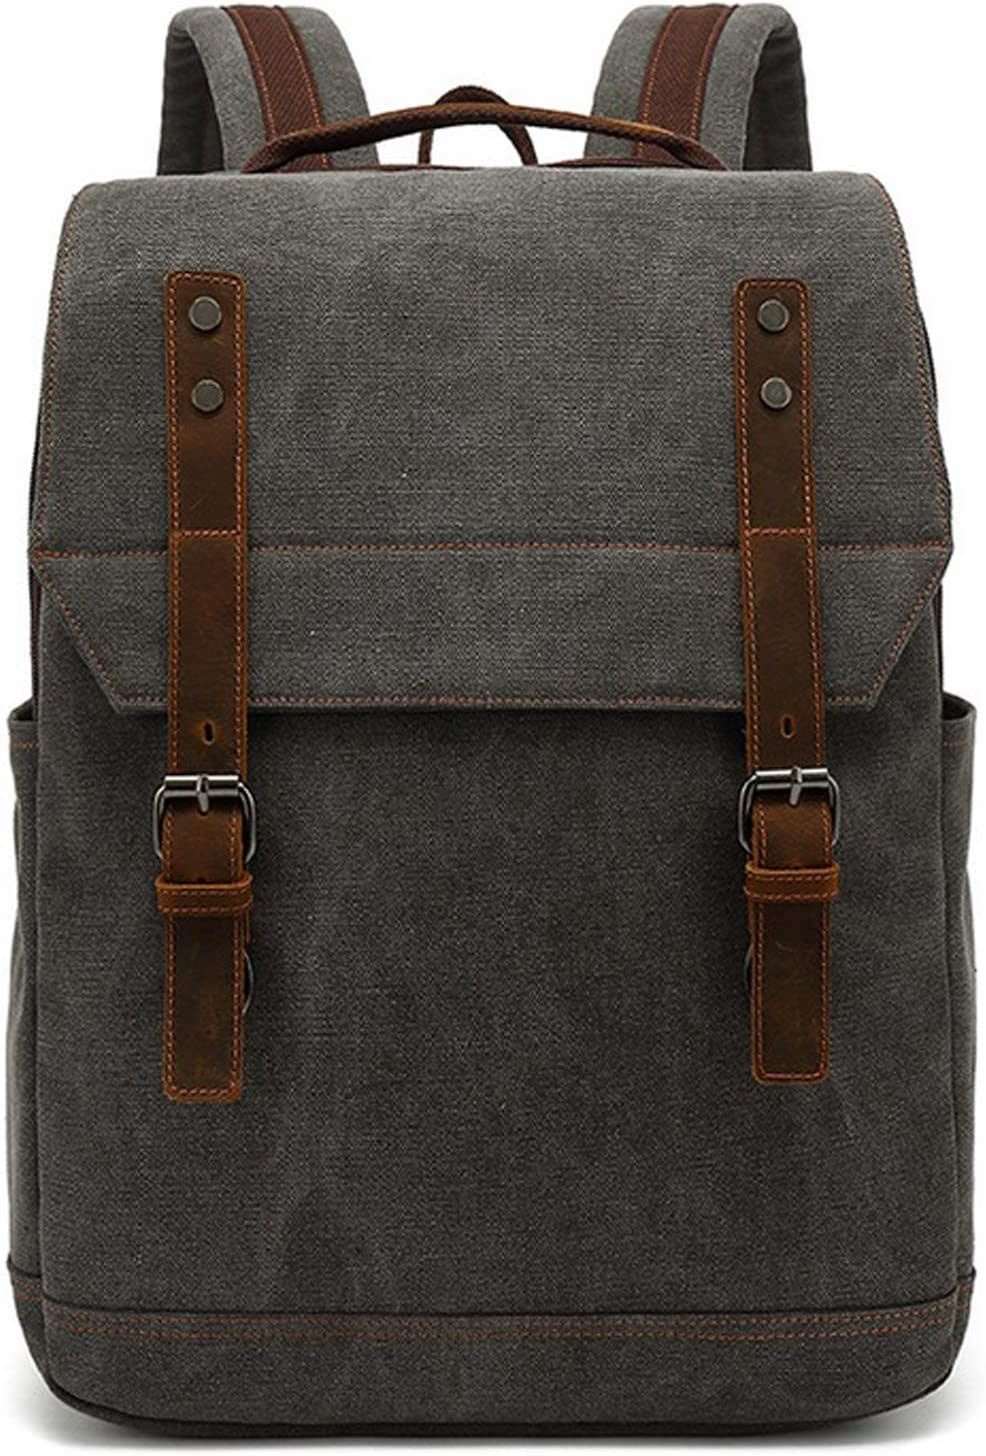 Vintage Canvas Backpack,Canvas Business Backpack, Large Capacity Laptop Backpack for Business Travel, School Hiking or Overnight Travel,Fits Laptop Upto 17'' (Gray)